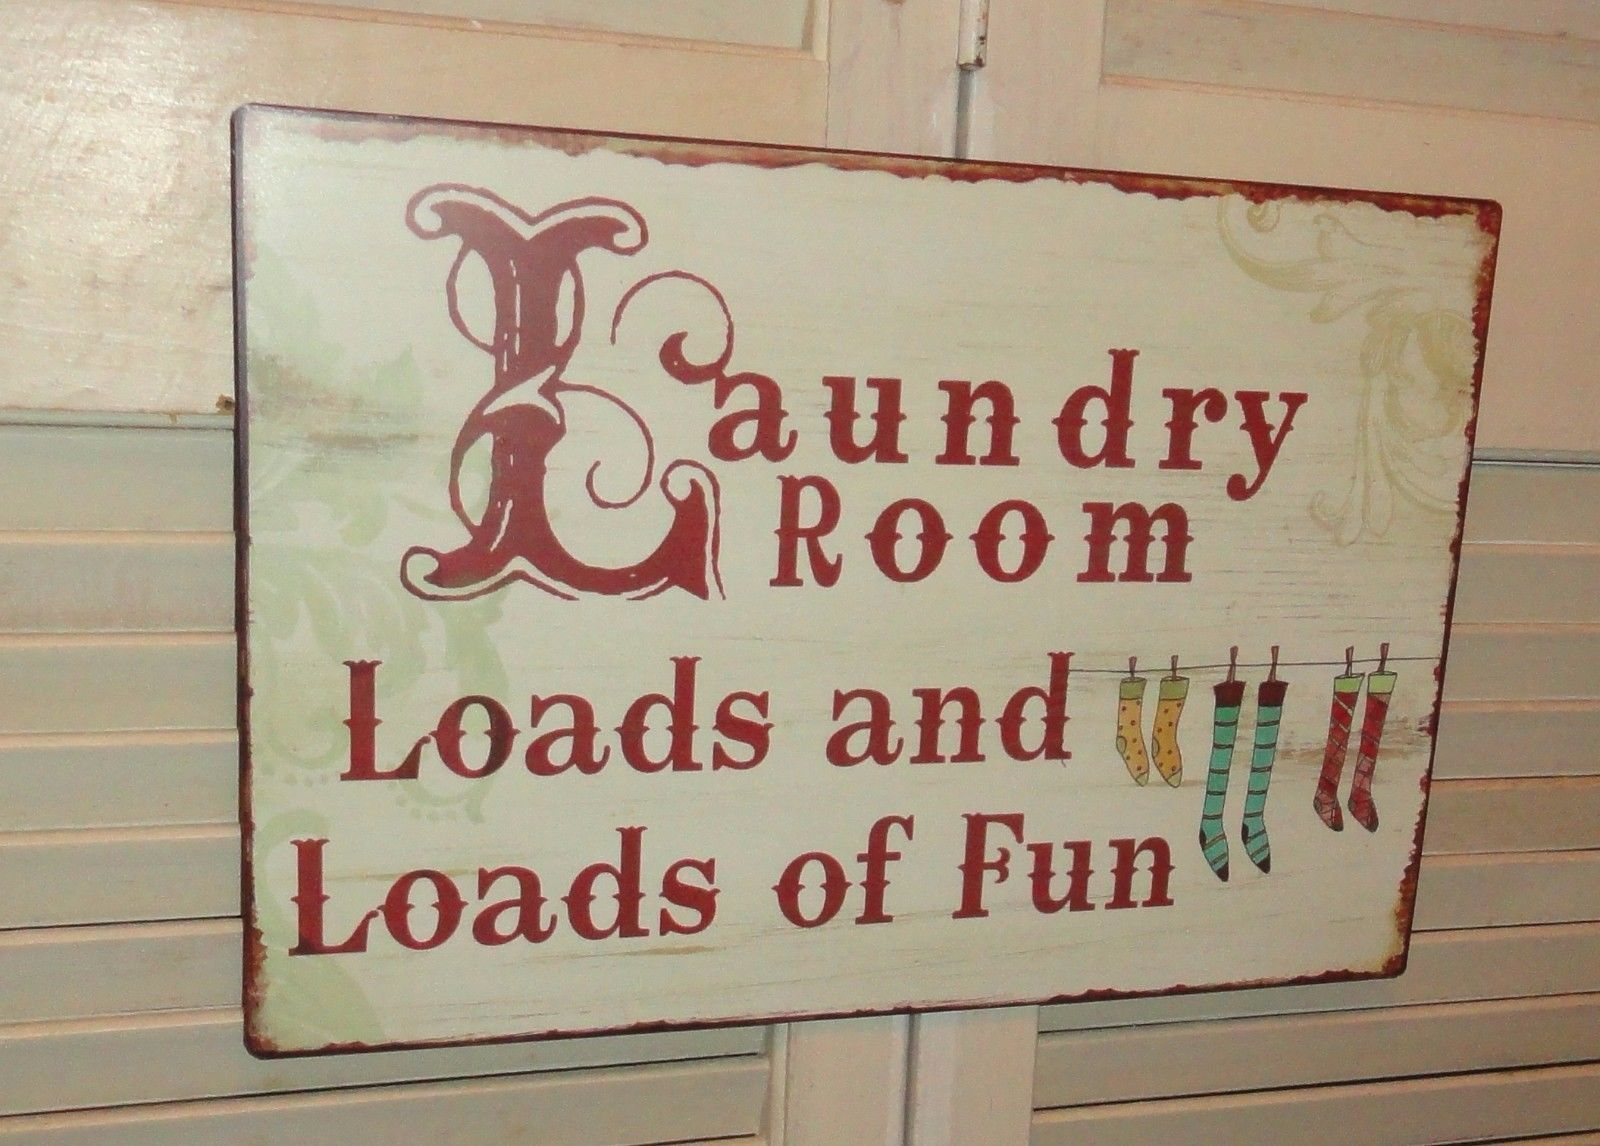 Wall Decor Signs For Home Inspiration Laundry Room Metal Sign Wall Decor Signs Home Decor Plaques And Inspiration Design